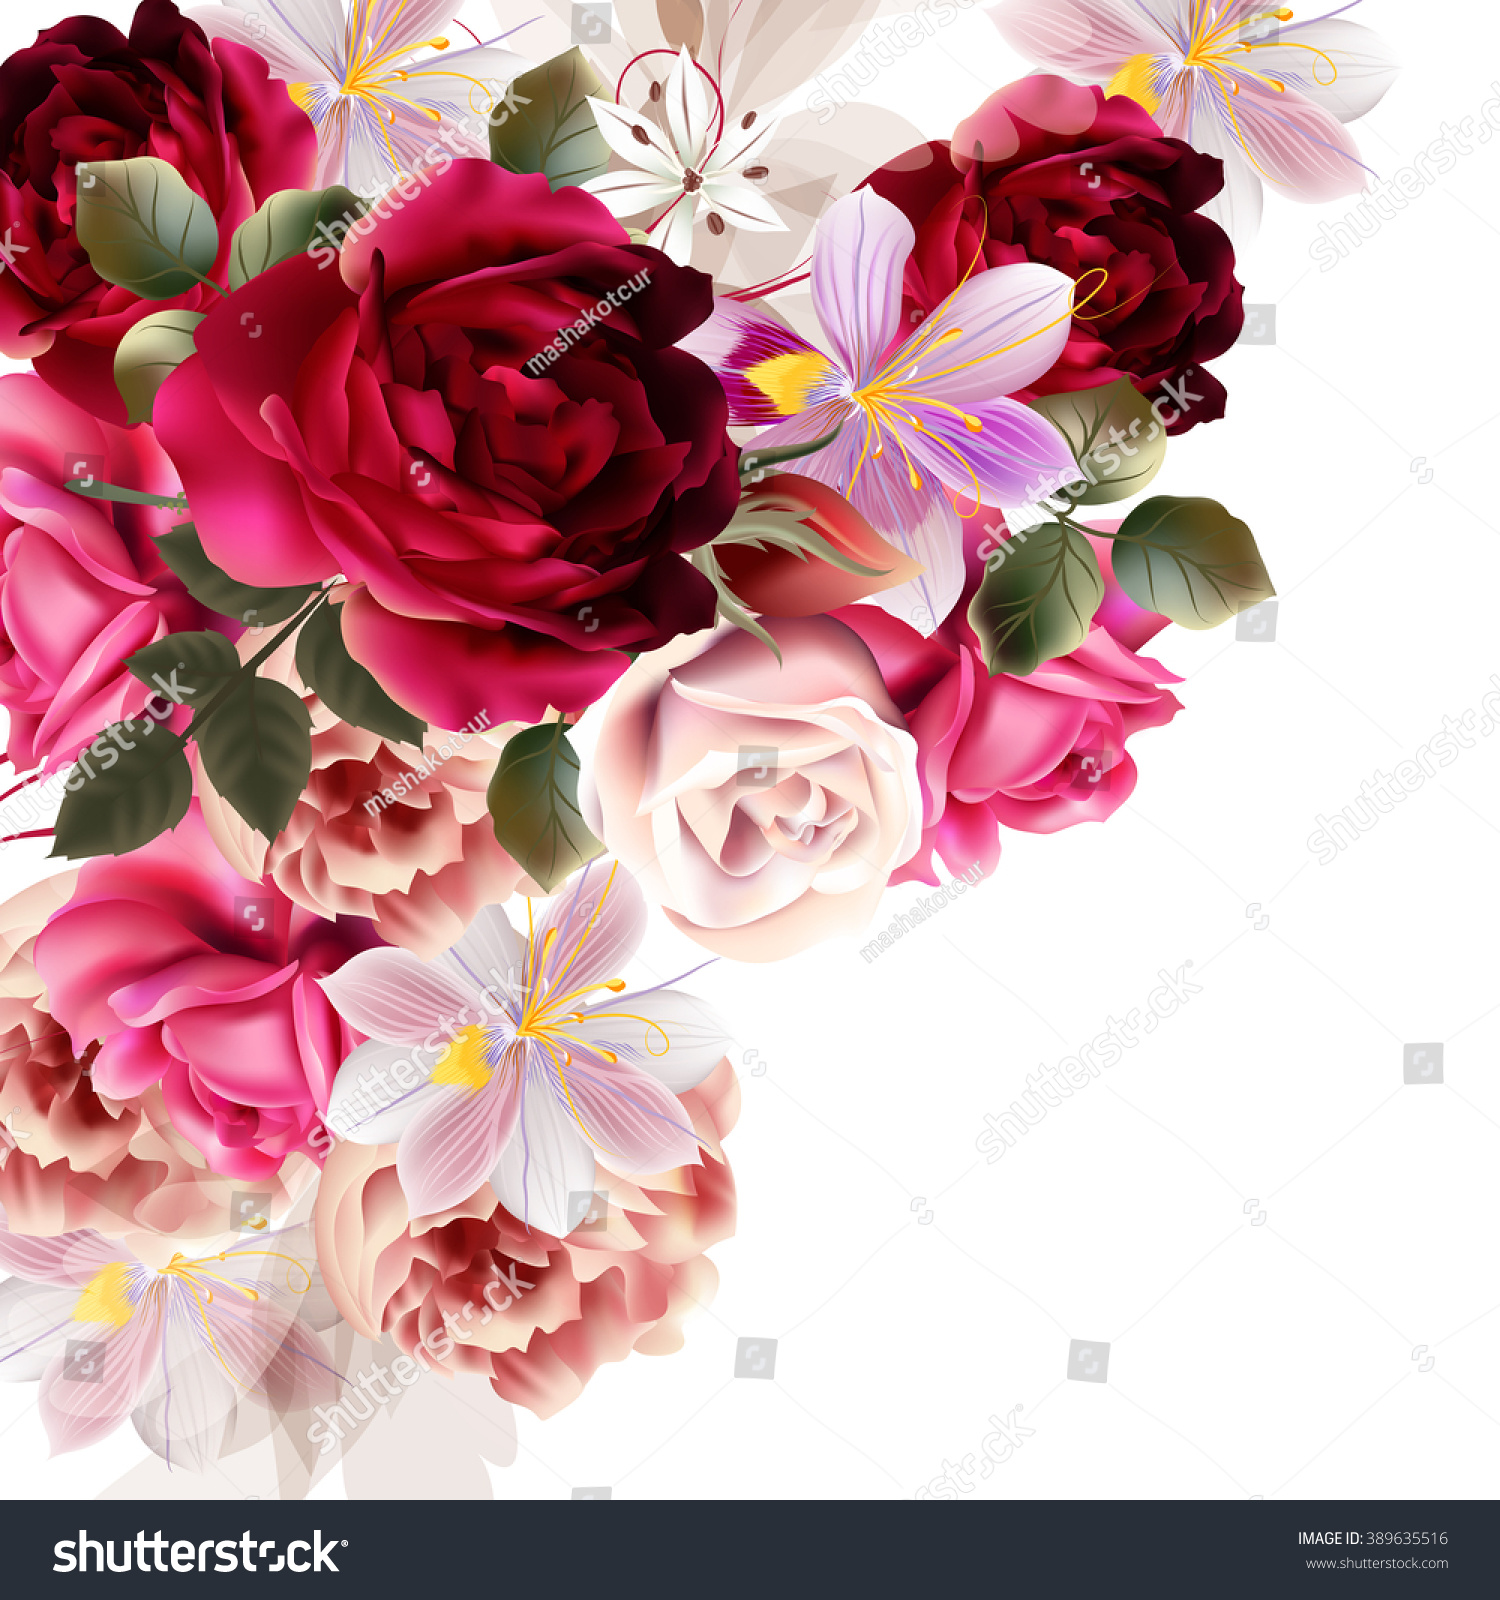 Beautiful Background Roses Hyacinth Flowers Vector Stock Vector ...